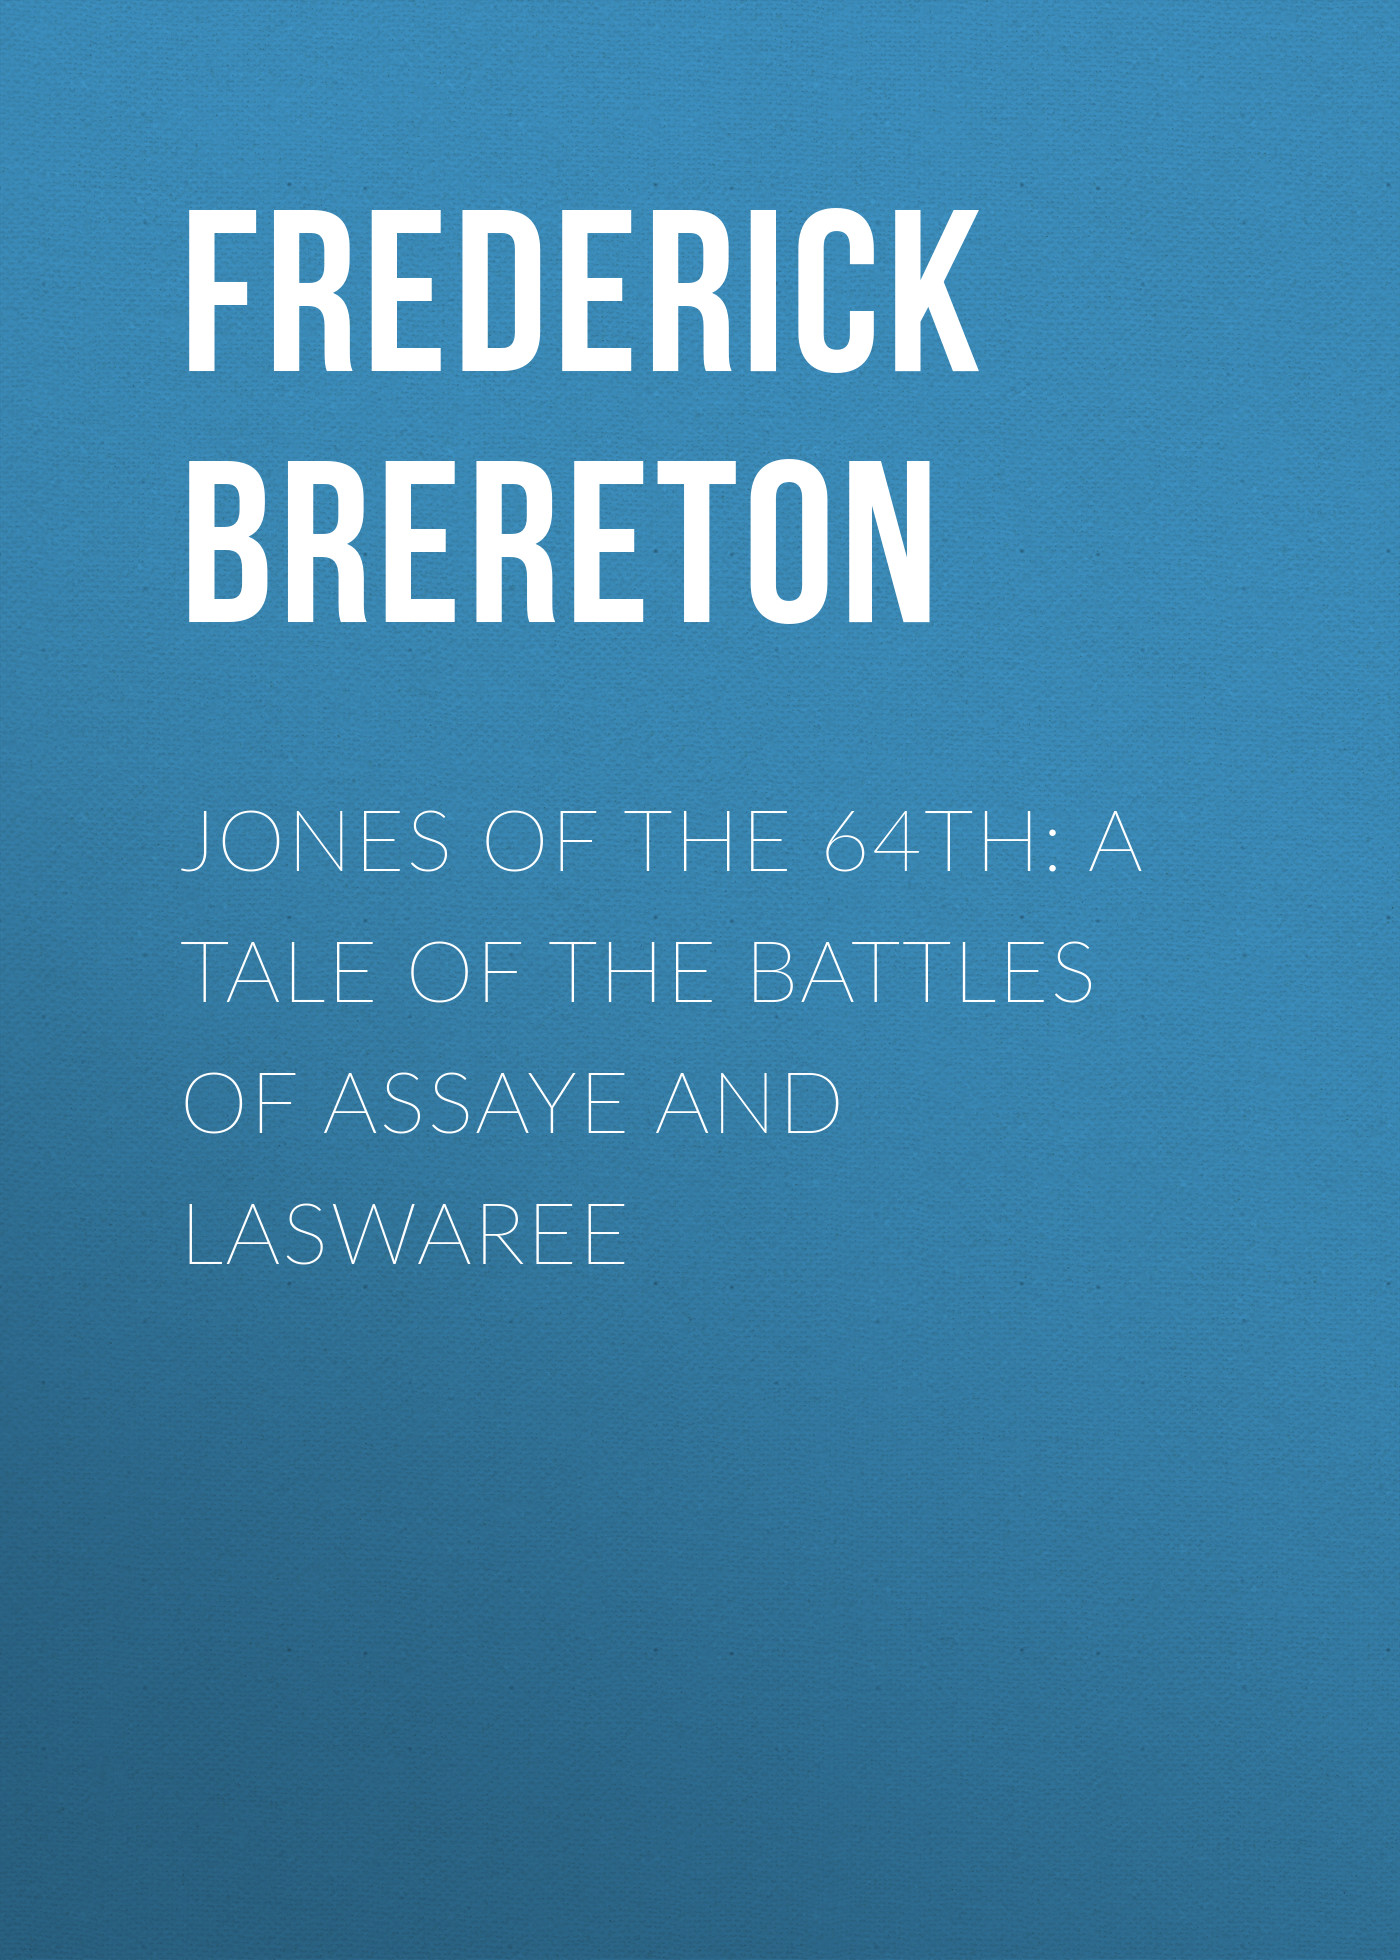 Brereton Frederick Sadleir Jones of the 64th: A Tale of the Battles of Assaye and Laswaree the christmas tale of peter rabbit cd